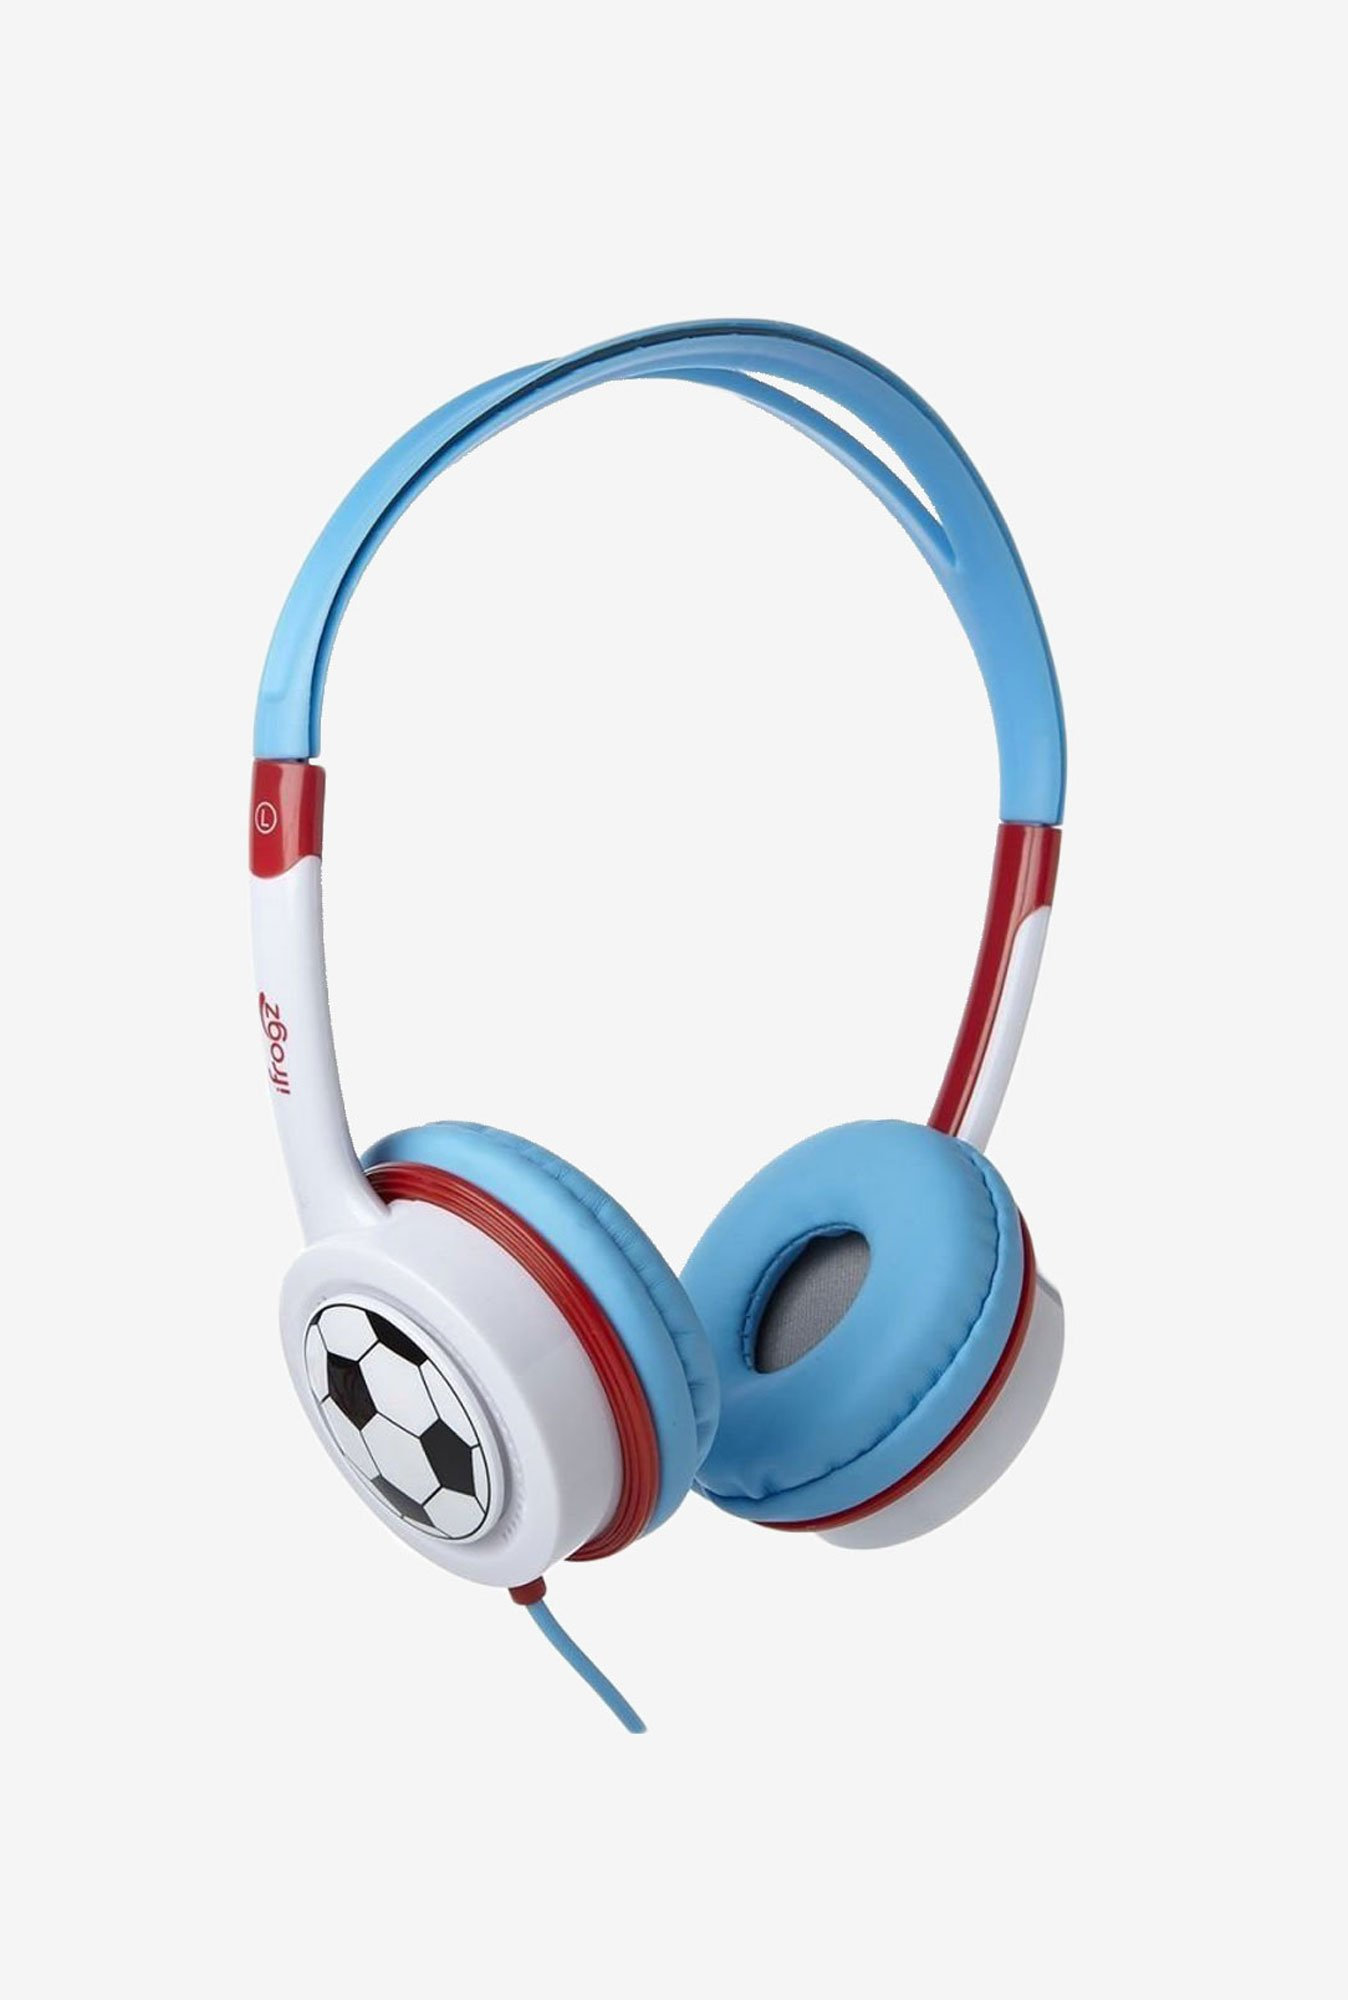 iFrogz Audio Little Rockers Headphones Red & Blue